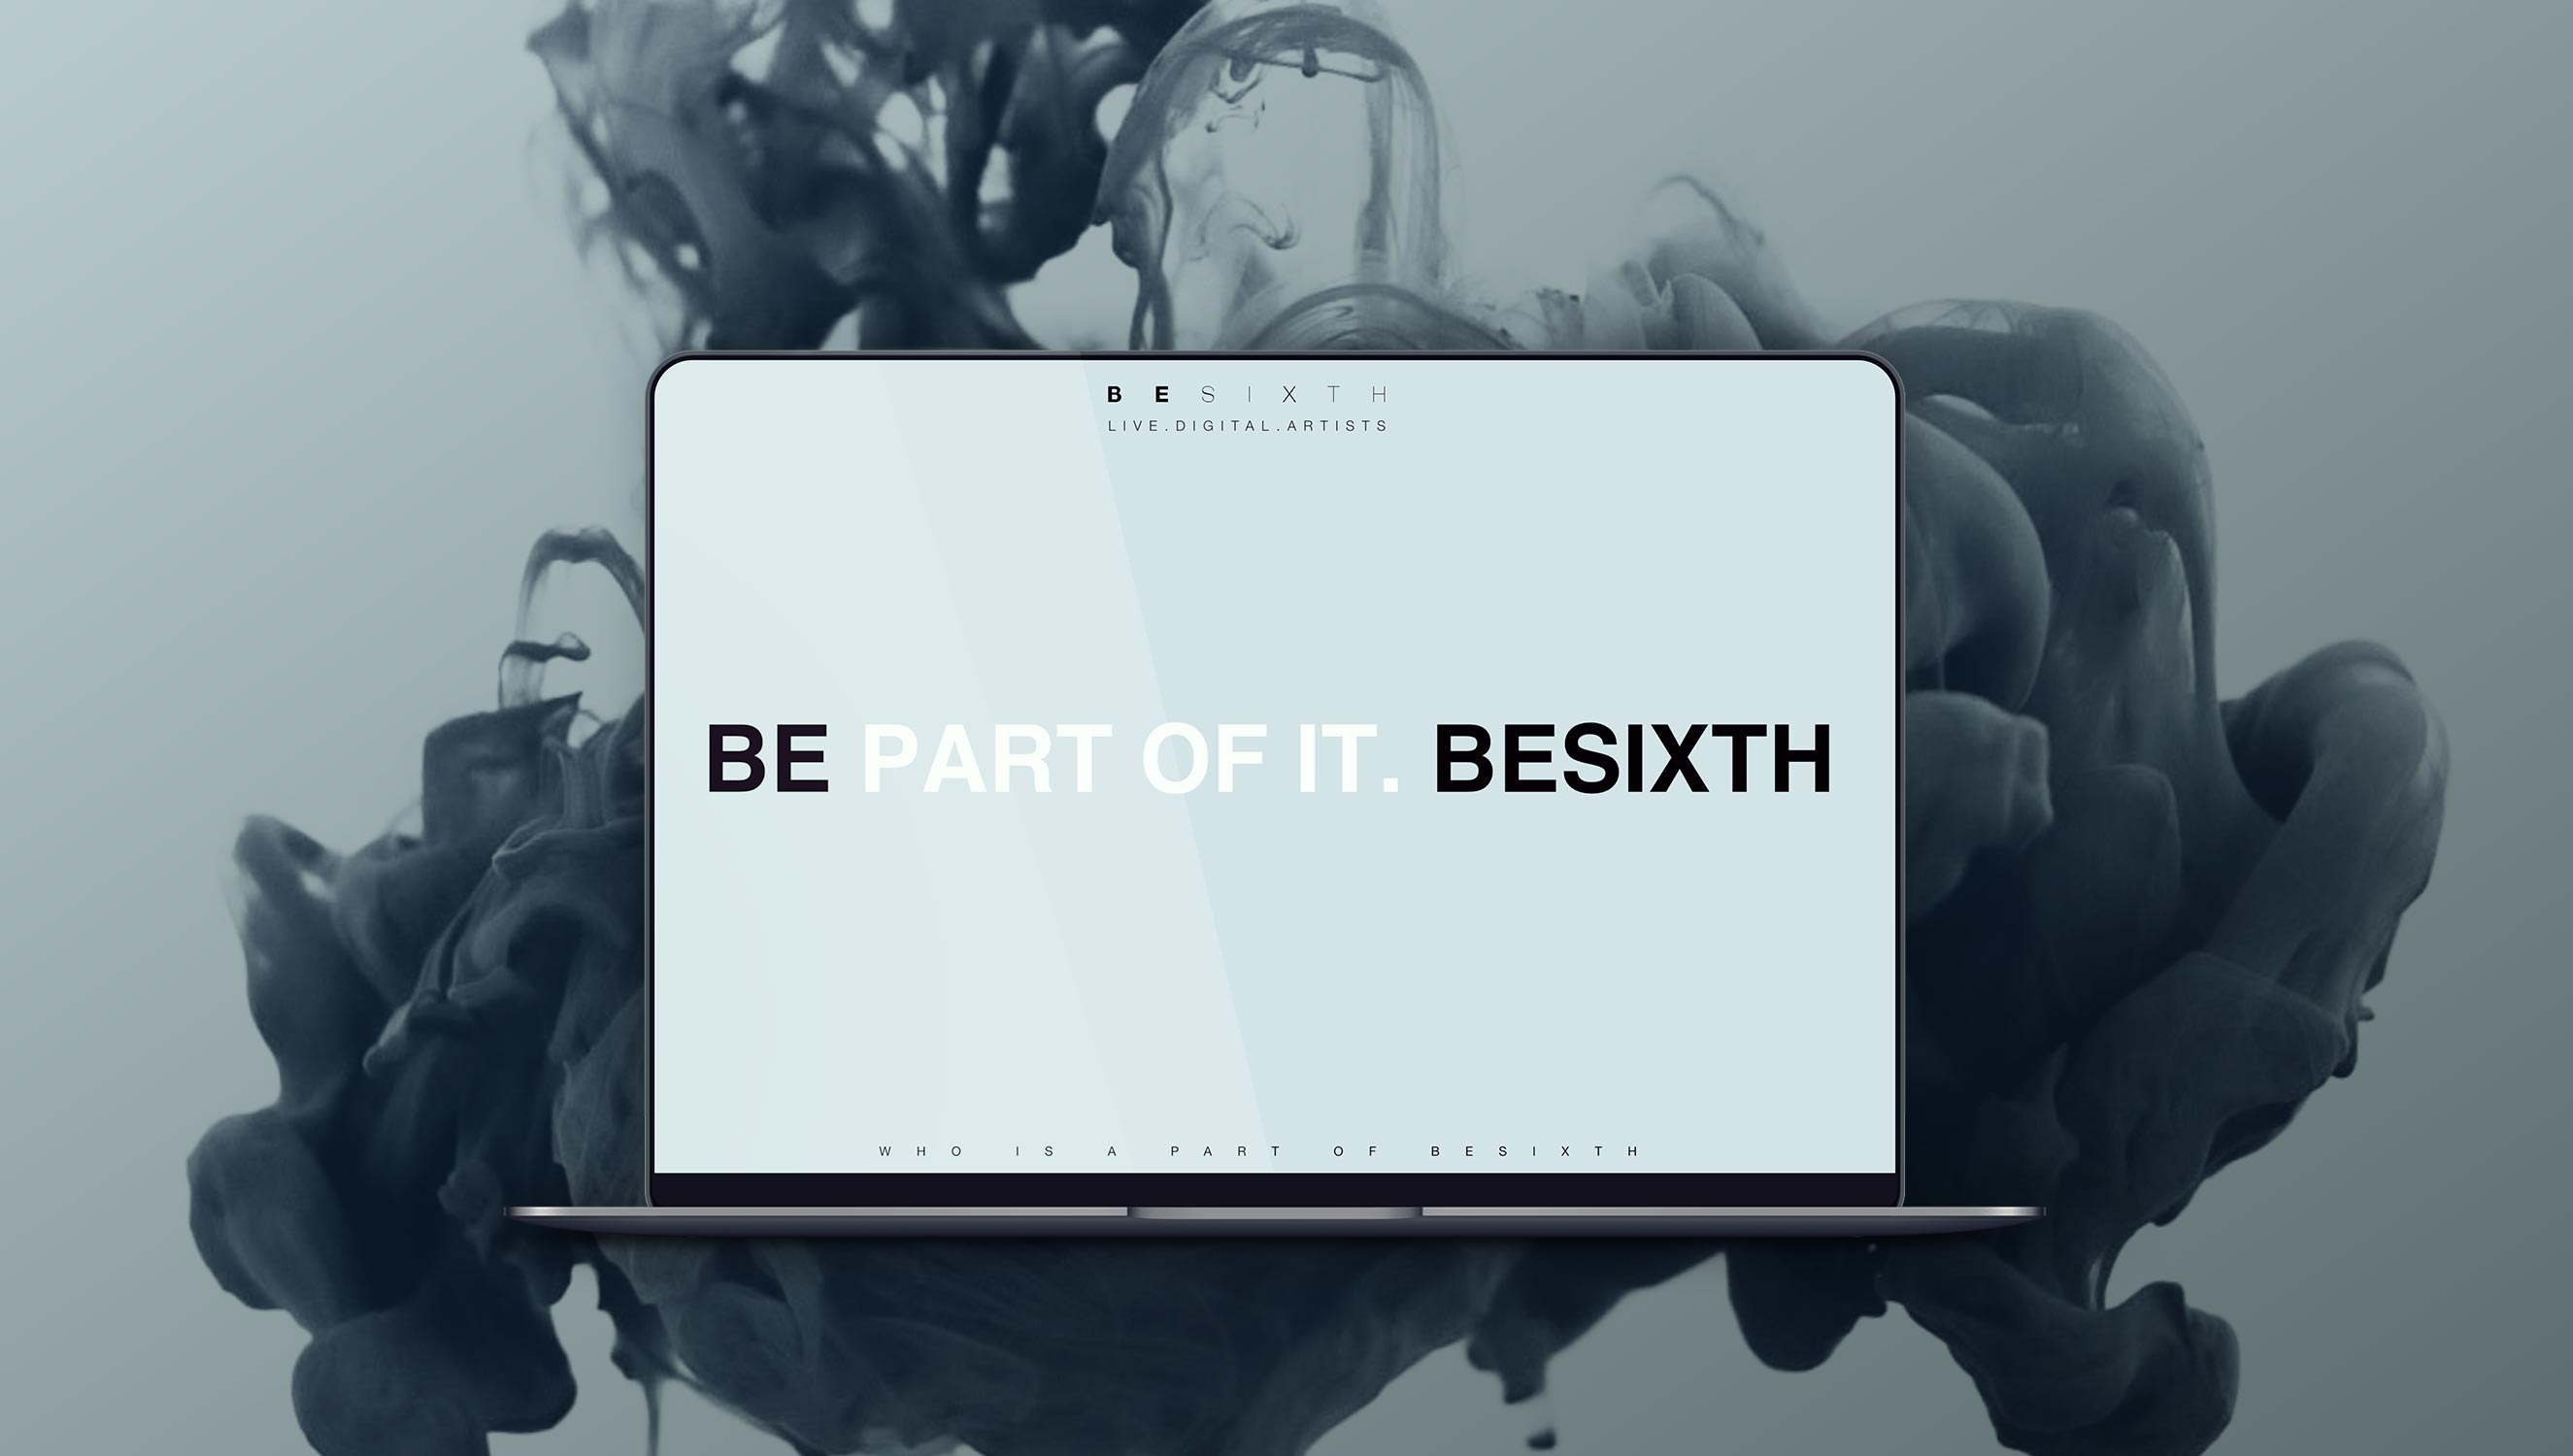 Besixth landing page displayed on a mac-book pro with black smoke behind